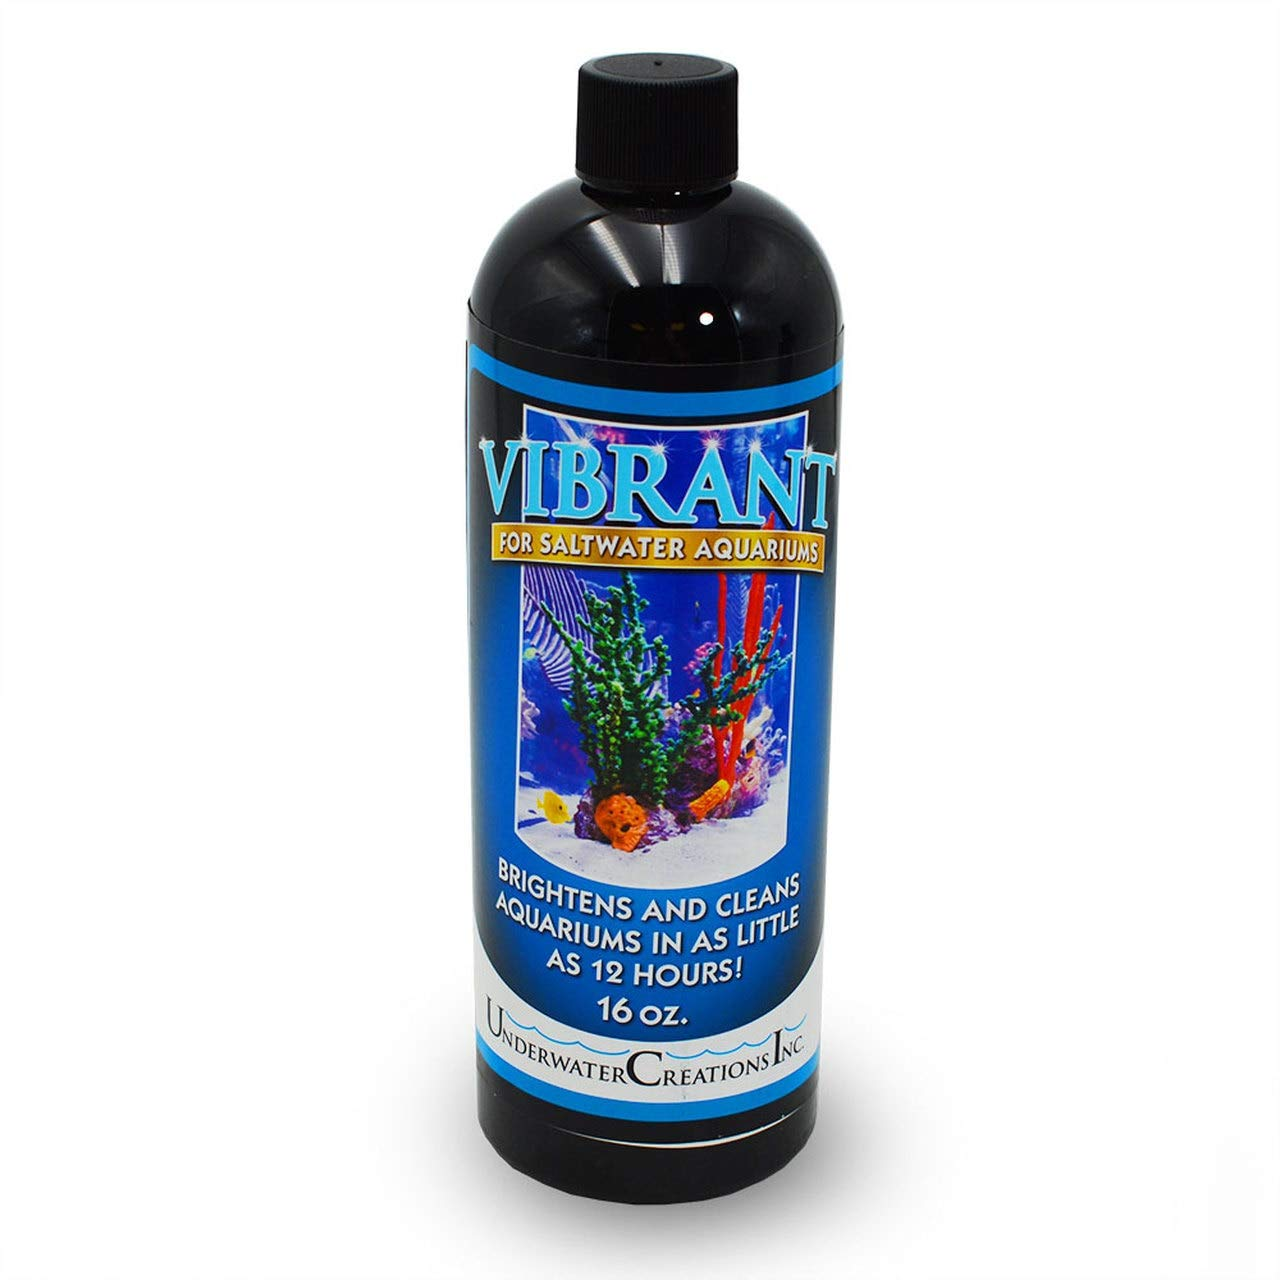 Vibrant Aquarium Cleaner for Marine (16 oz)